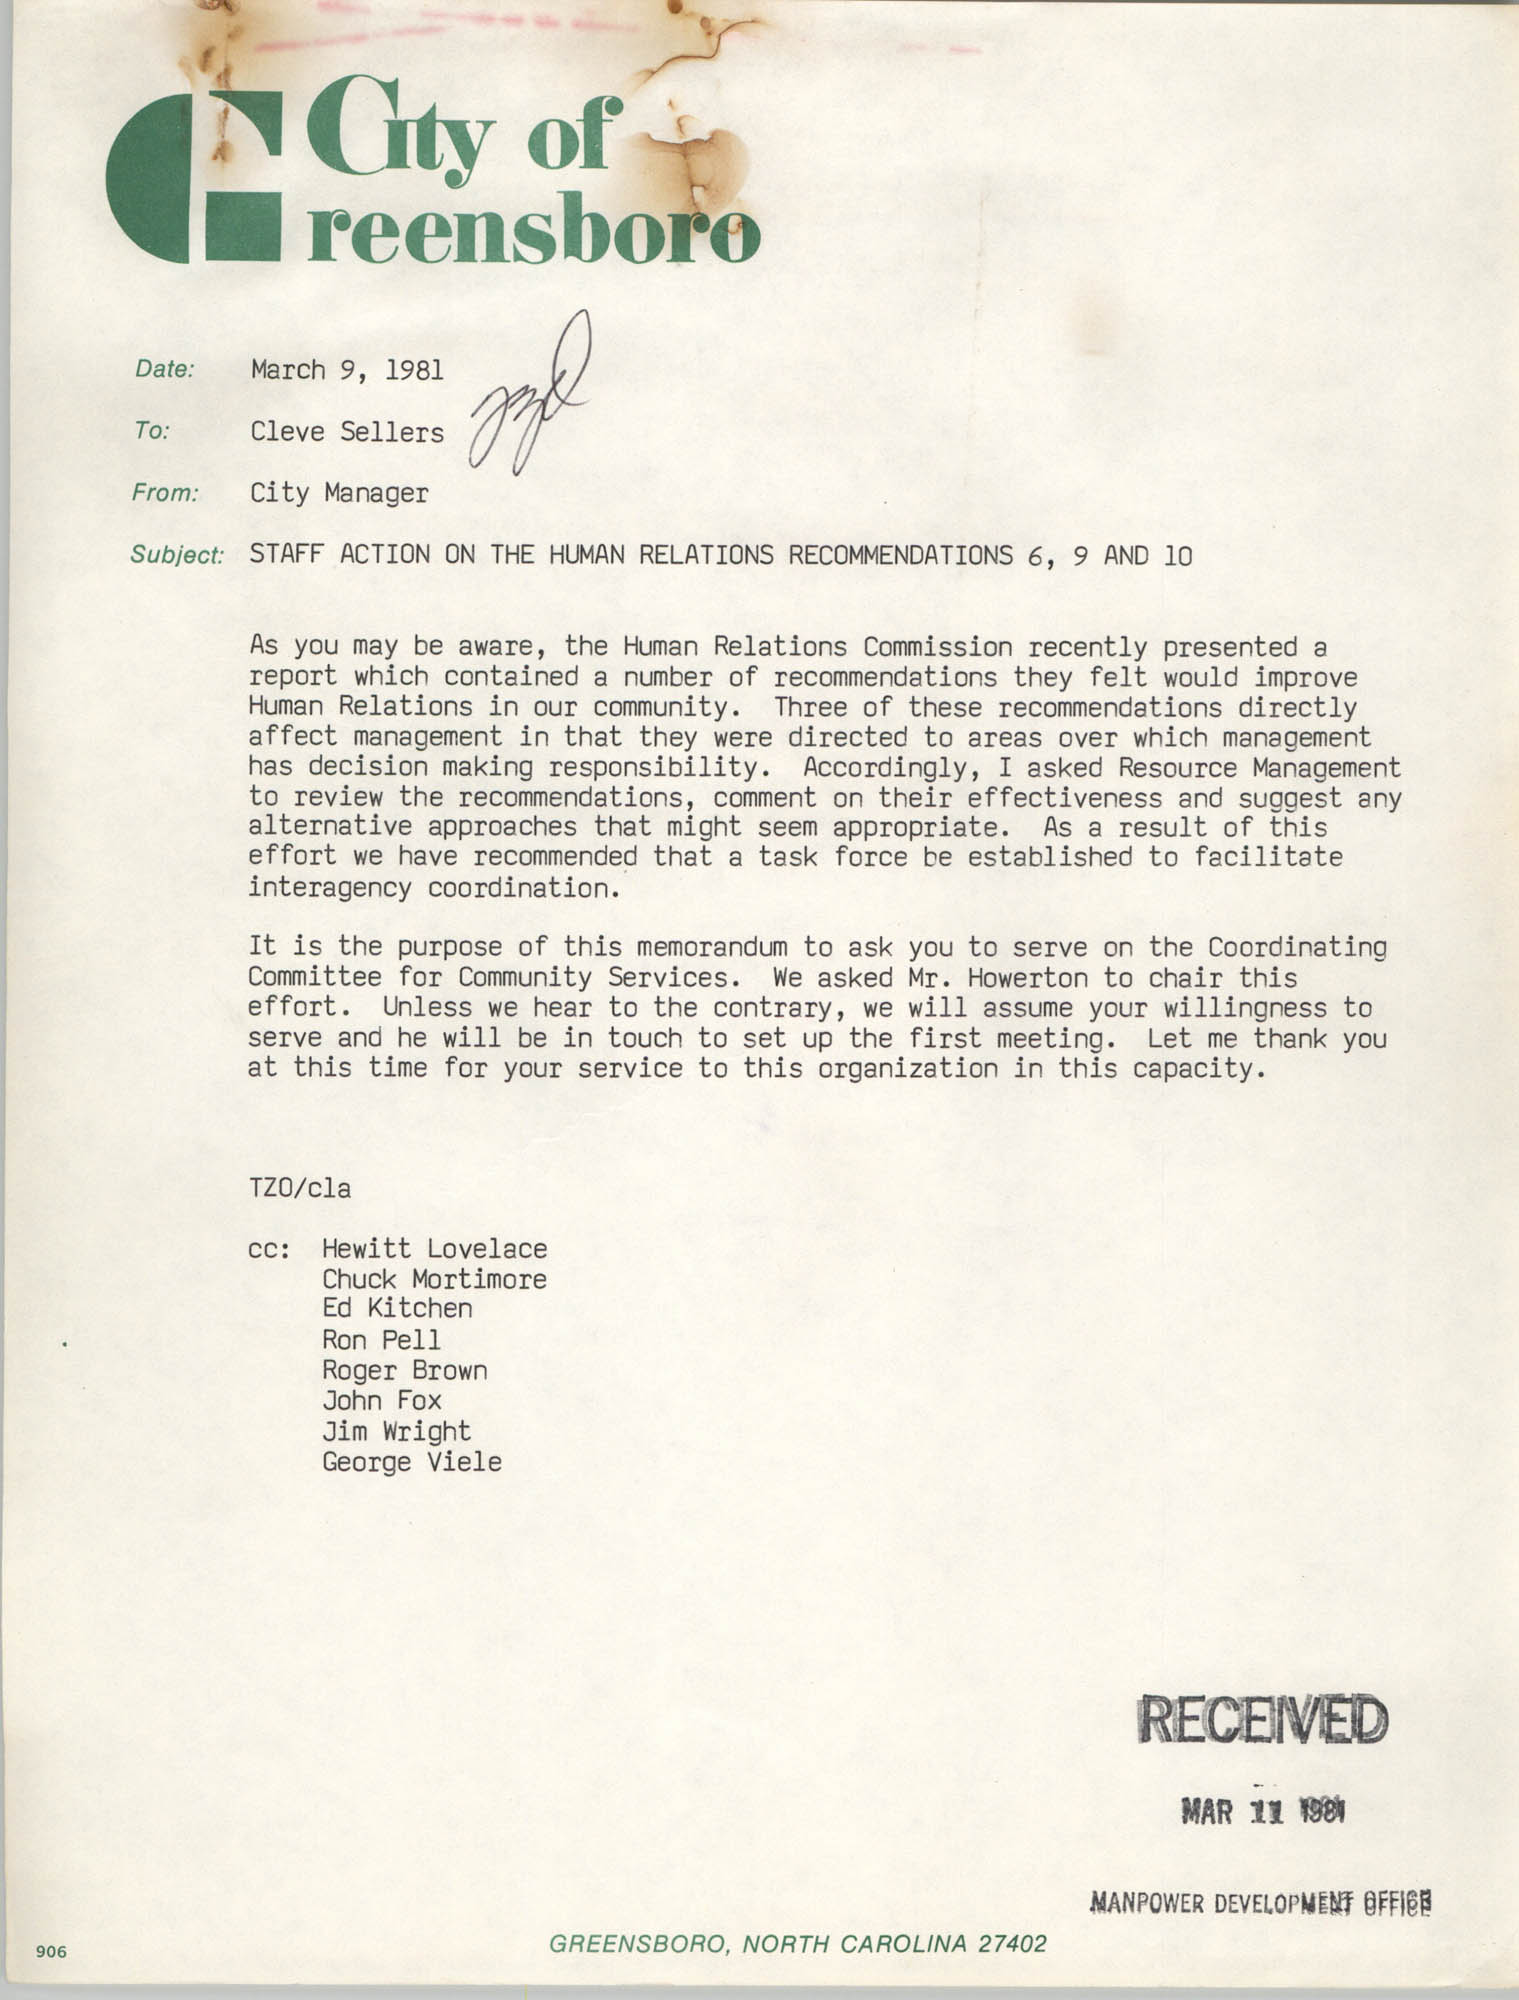 City of Greensboro Memorandum, March 9, 1981